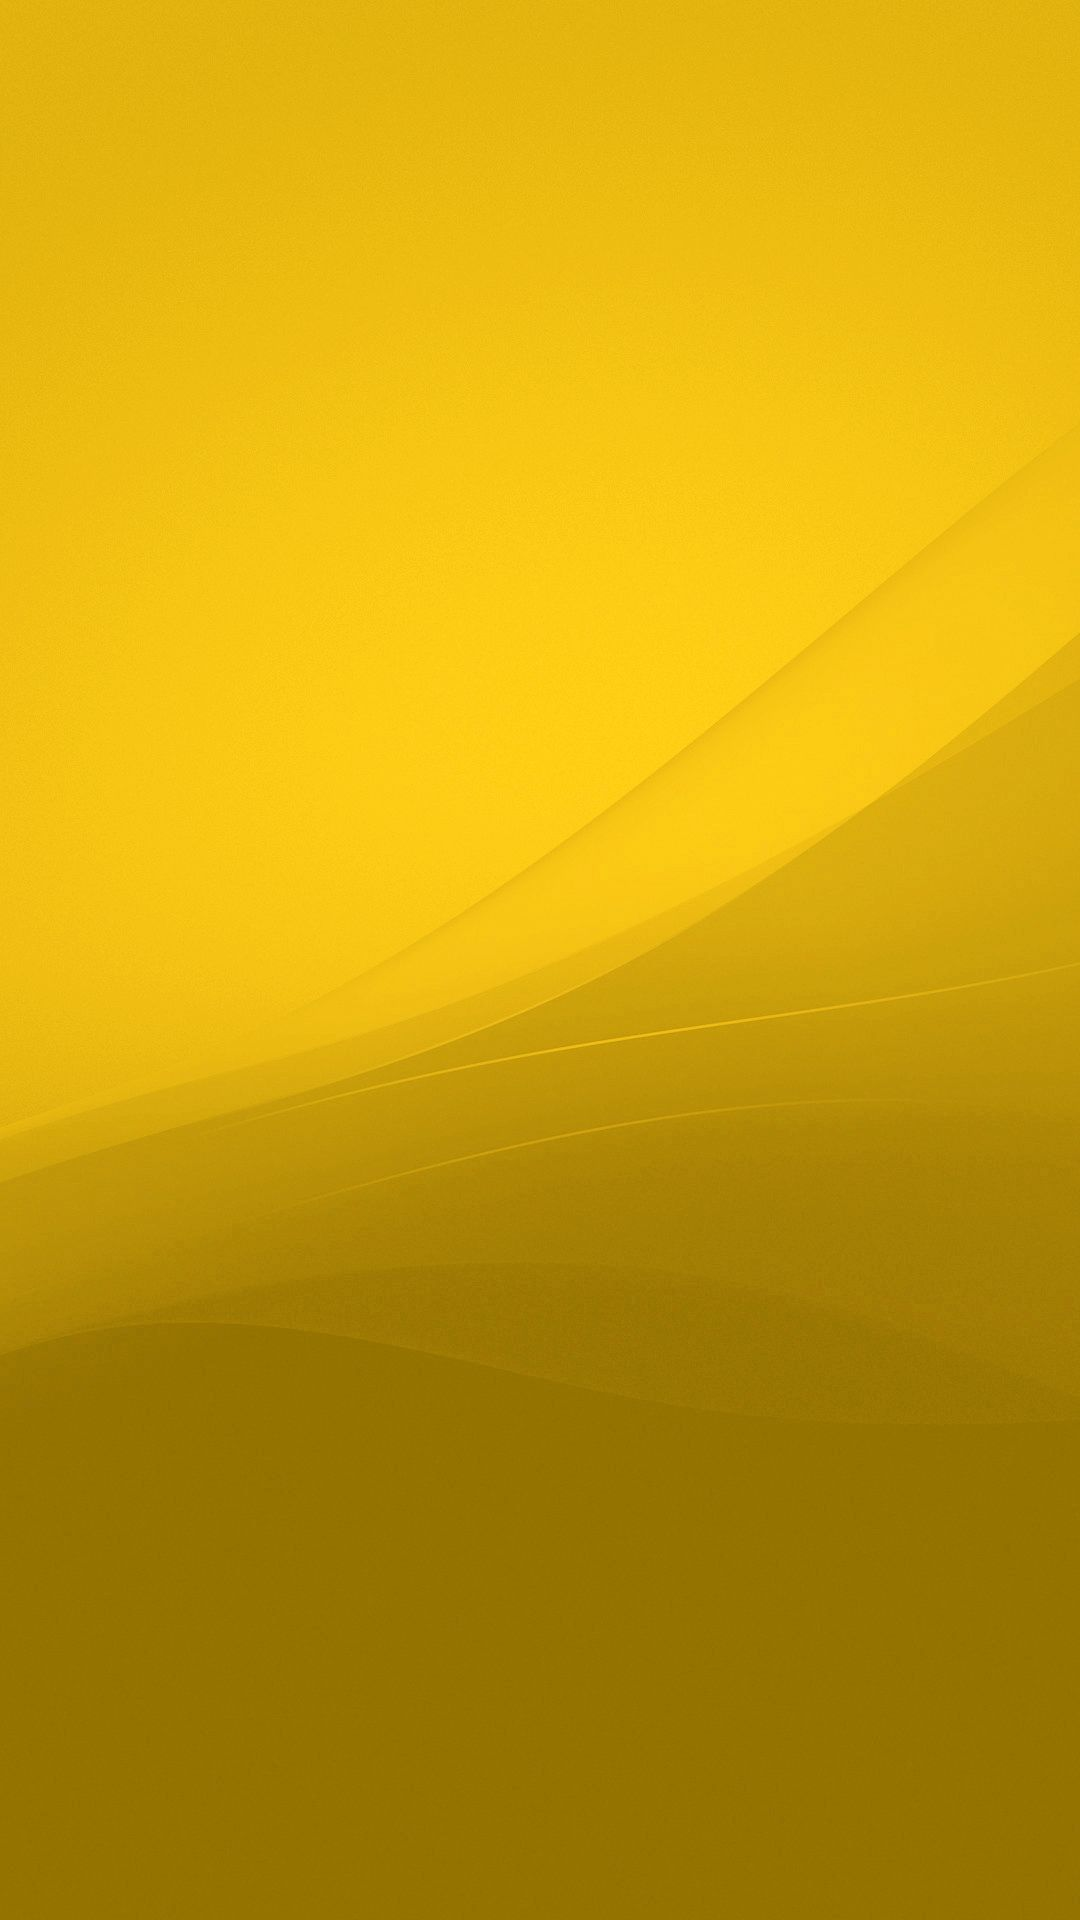 Yellow Wallpaper Iphone Background Hupages Download Iphone Wallpapers Beautiful Wallpaper For Phone Yellow Wallpaper Iphone Background